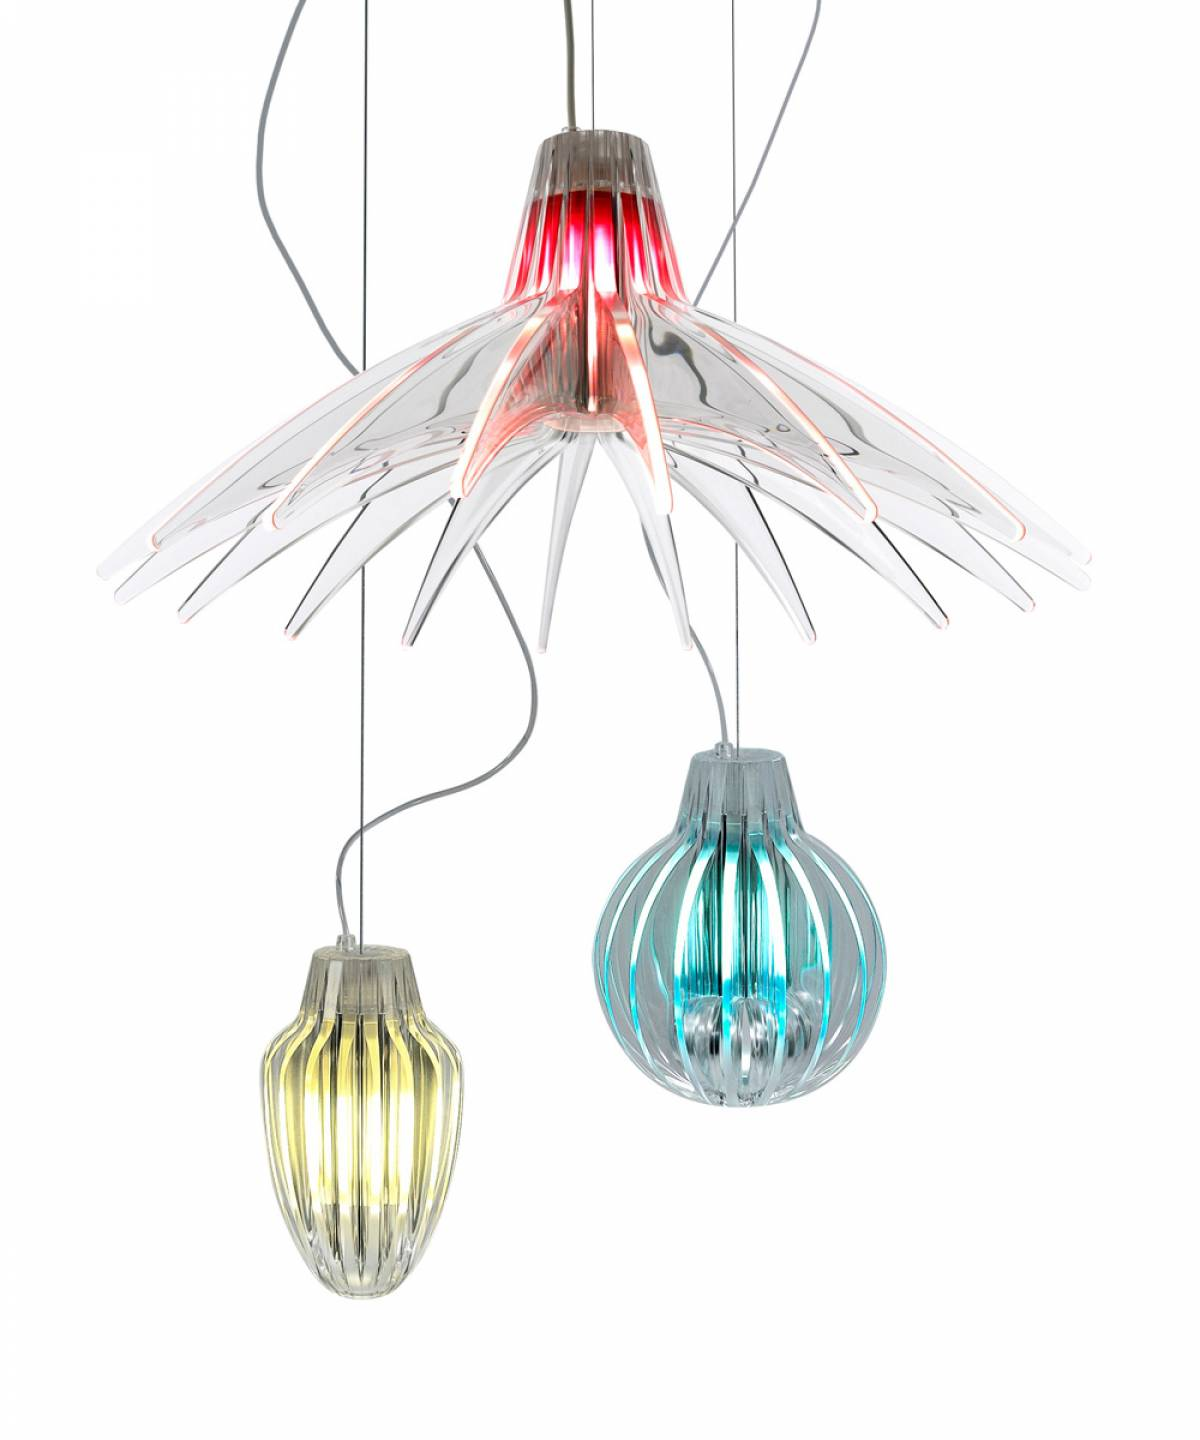 3 Agave suspension lamp Luceplan